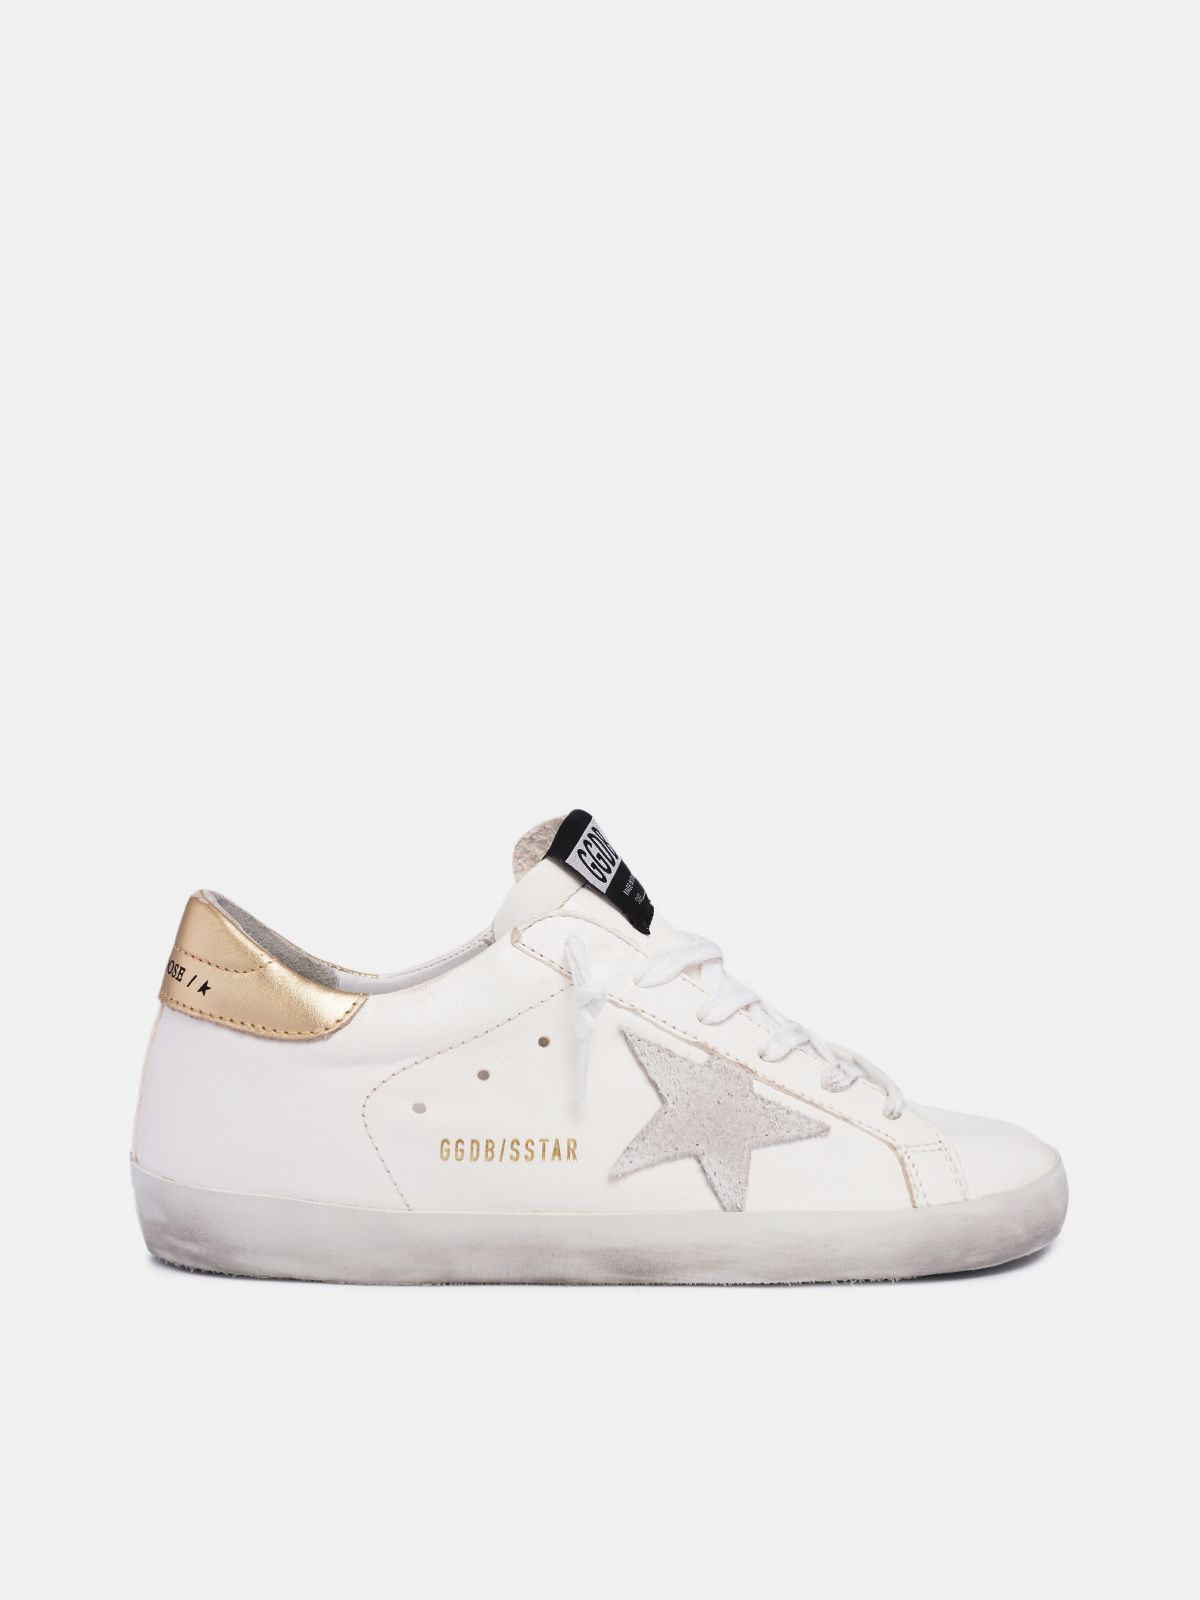 White Super-Star sneakers with gold heel tab